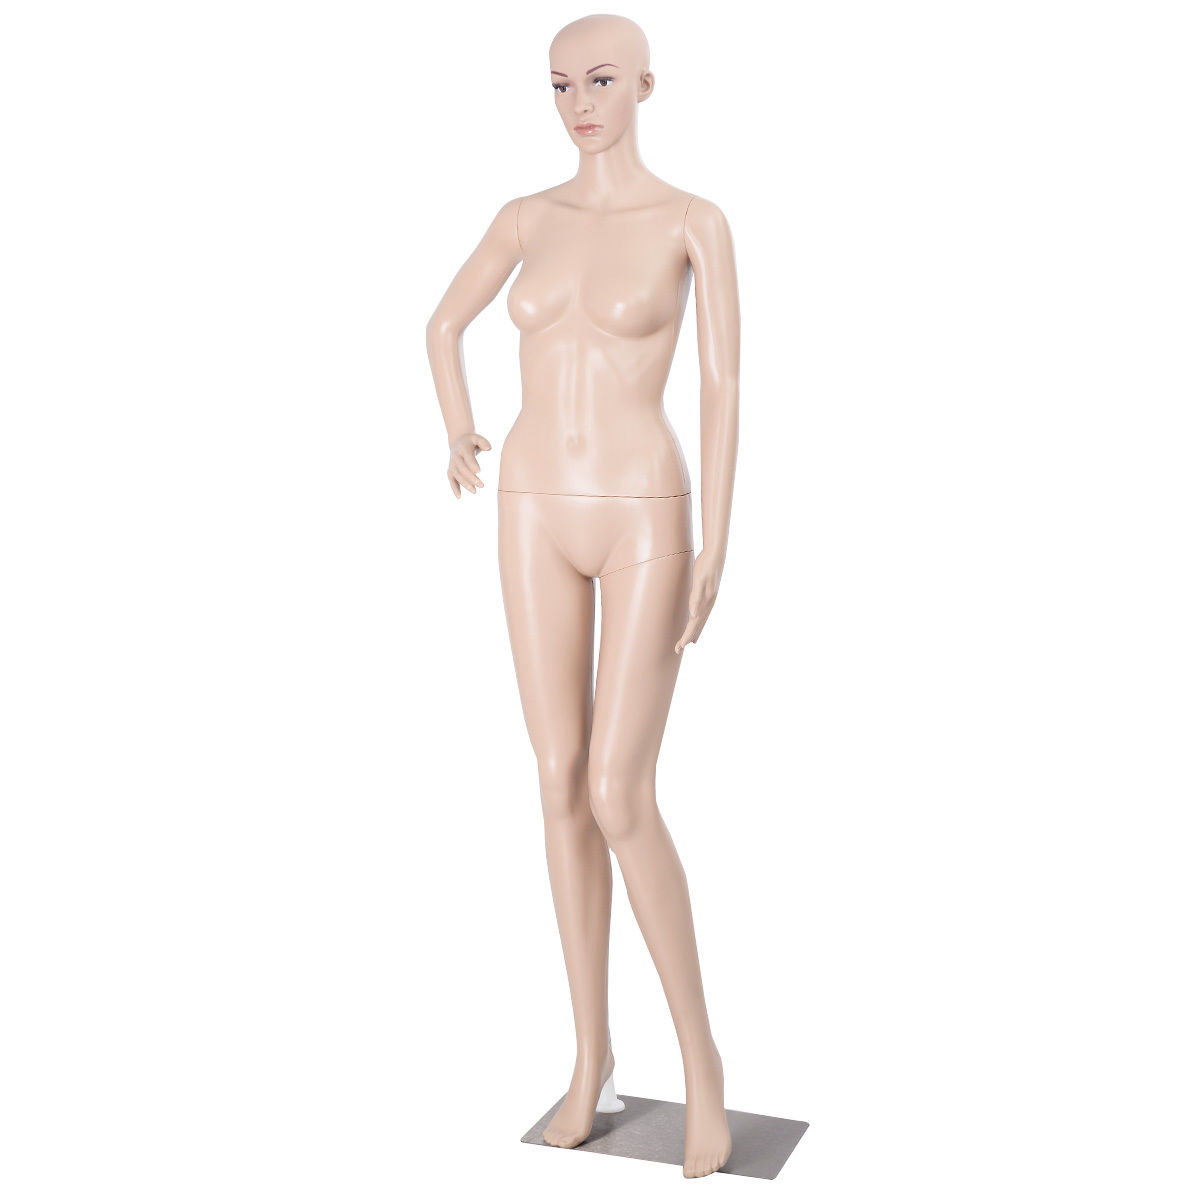 Akimbo Female Mannequin Plastic Realistic Display with Base